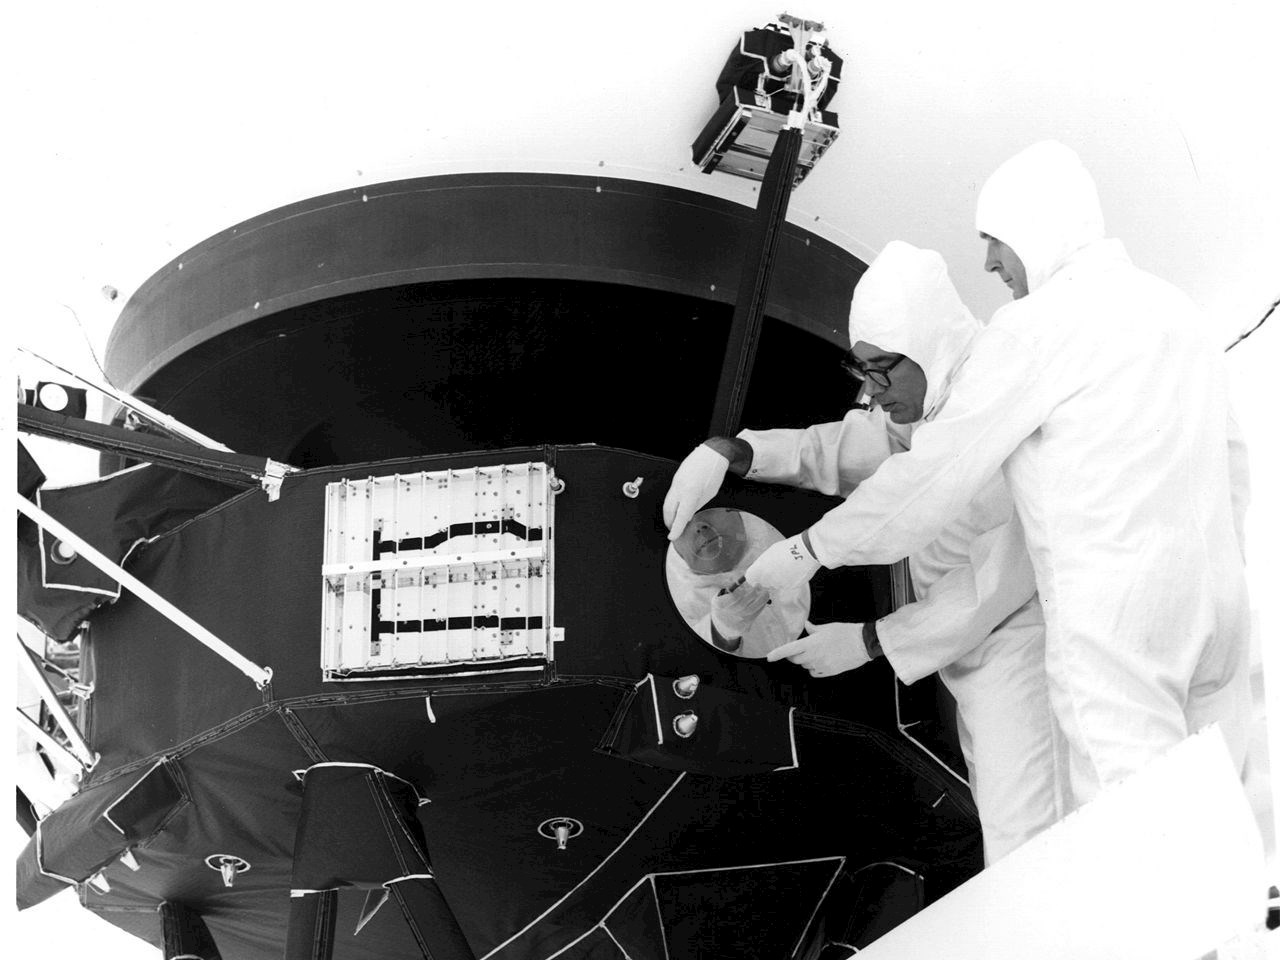 Golden record is attached to the spacecraft